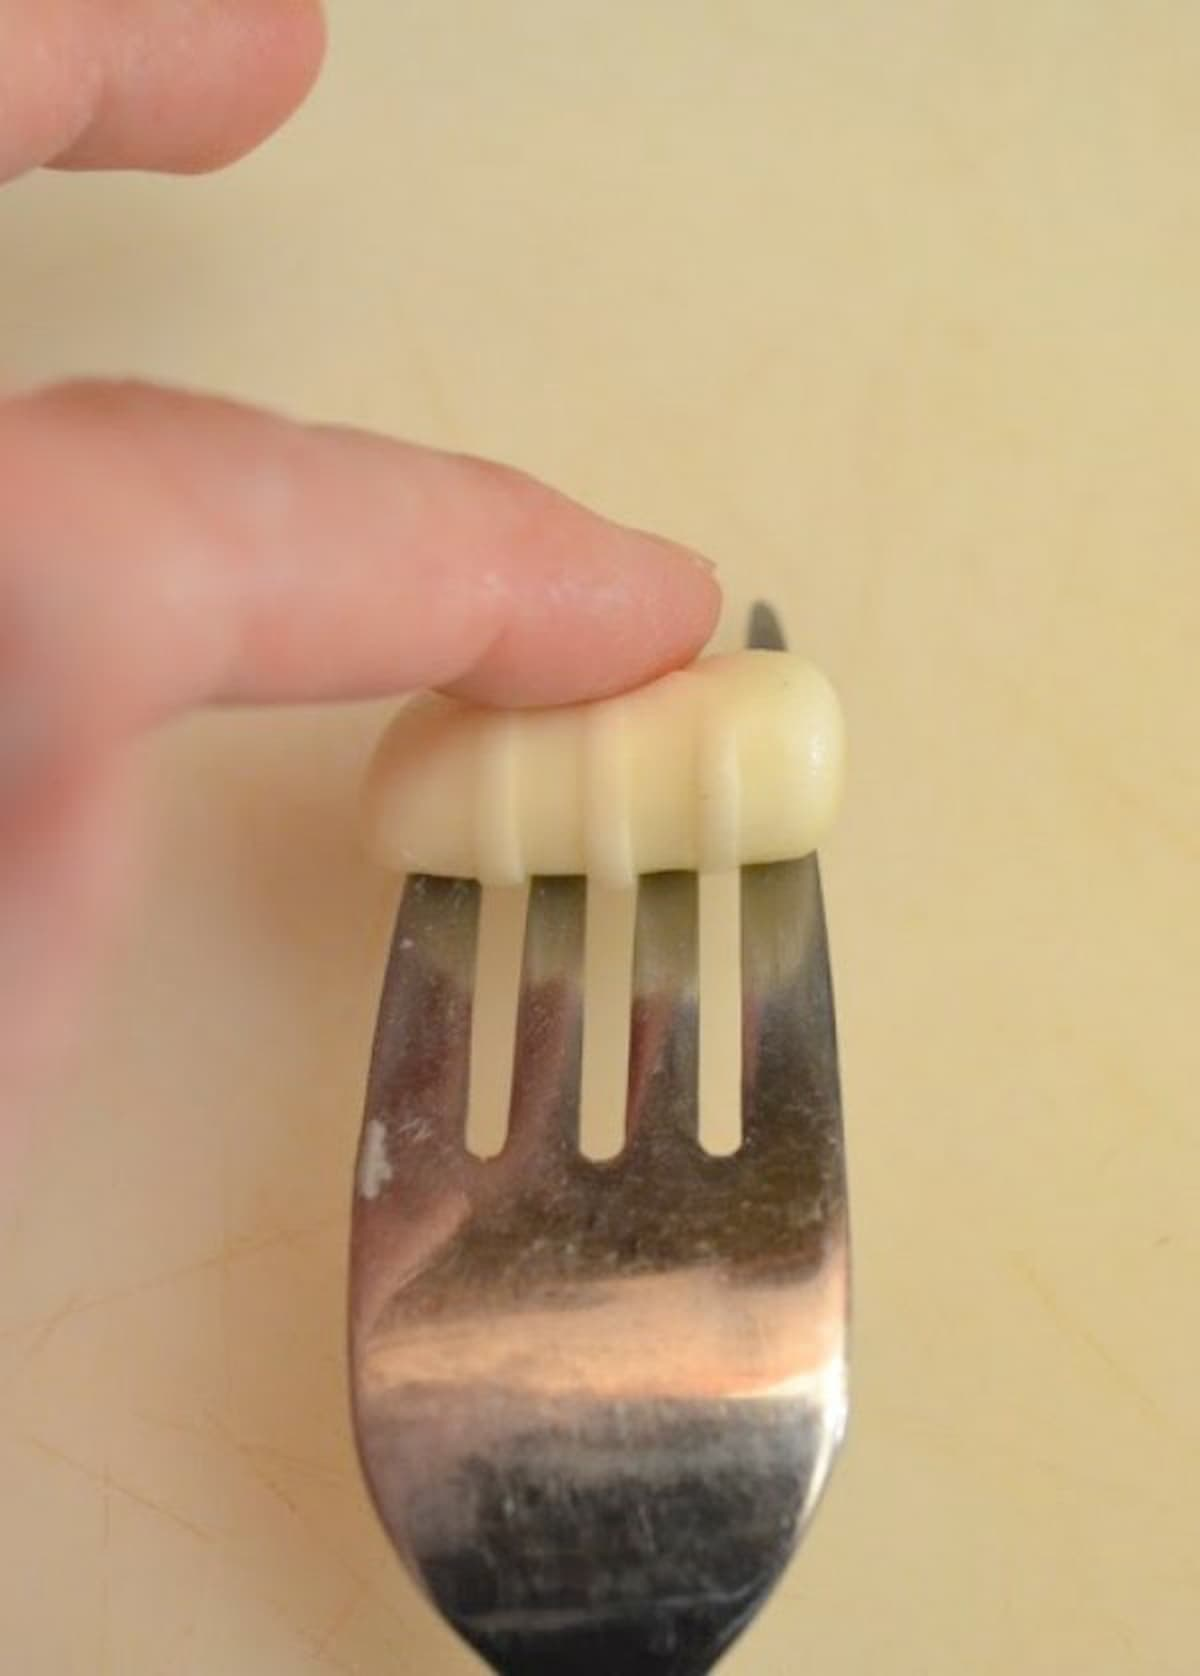 Fork print from being rolled down fork tines on Buttermint.